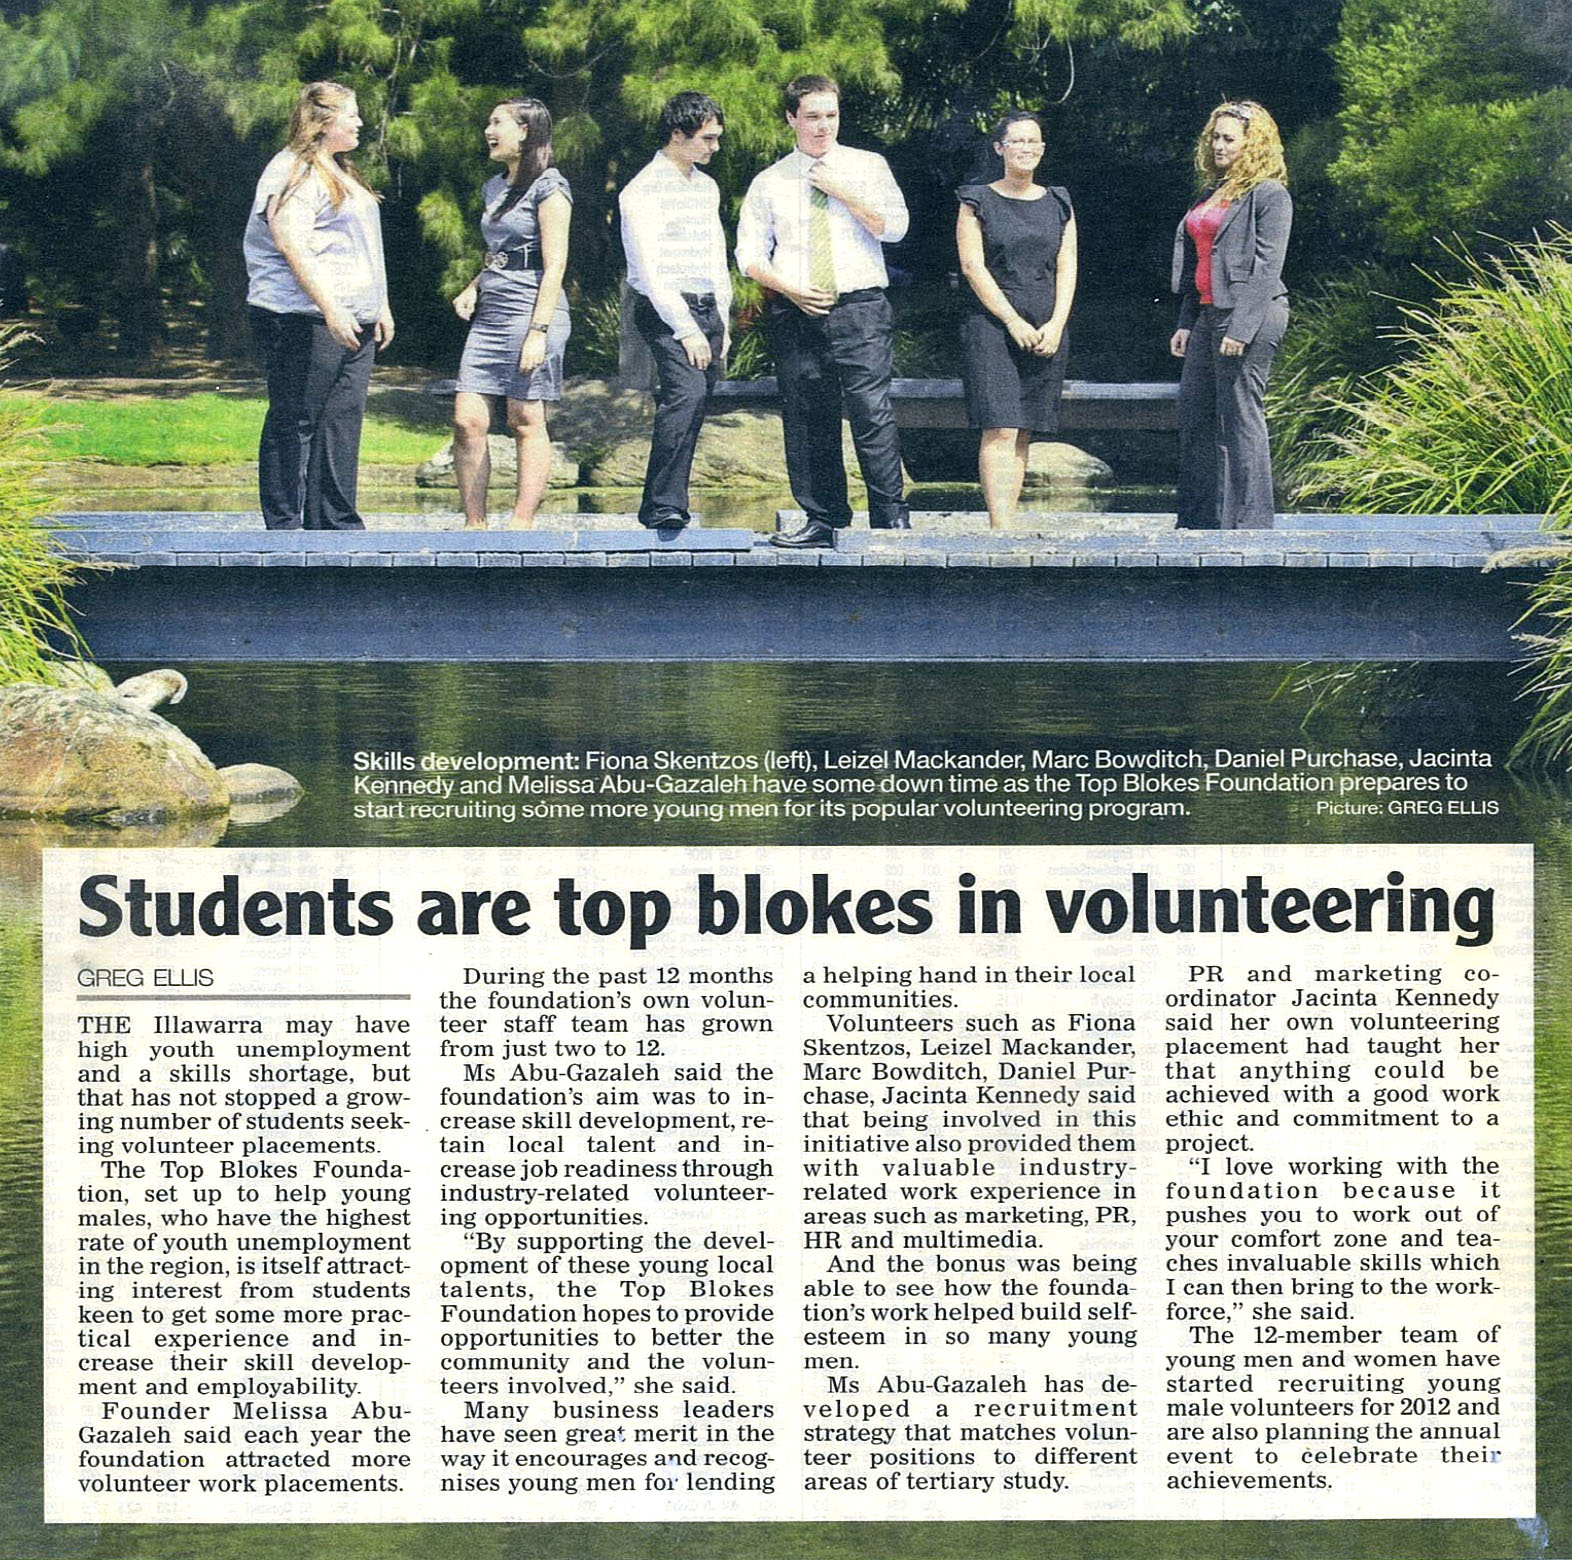 Students Are Top Blokes in Volunteering.jpg